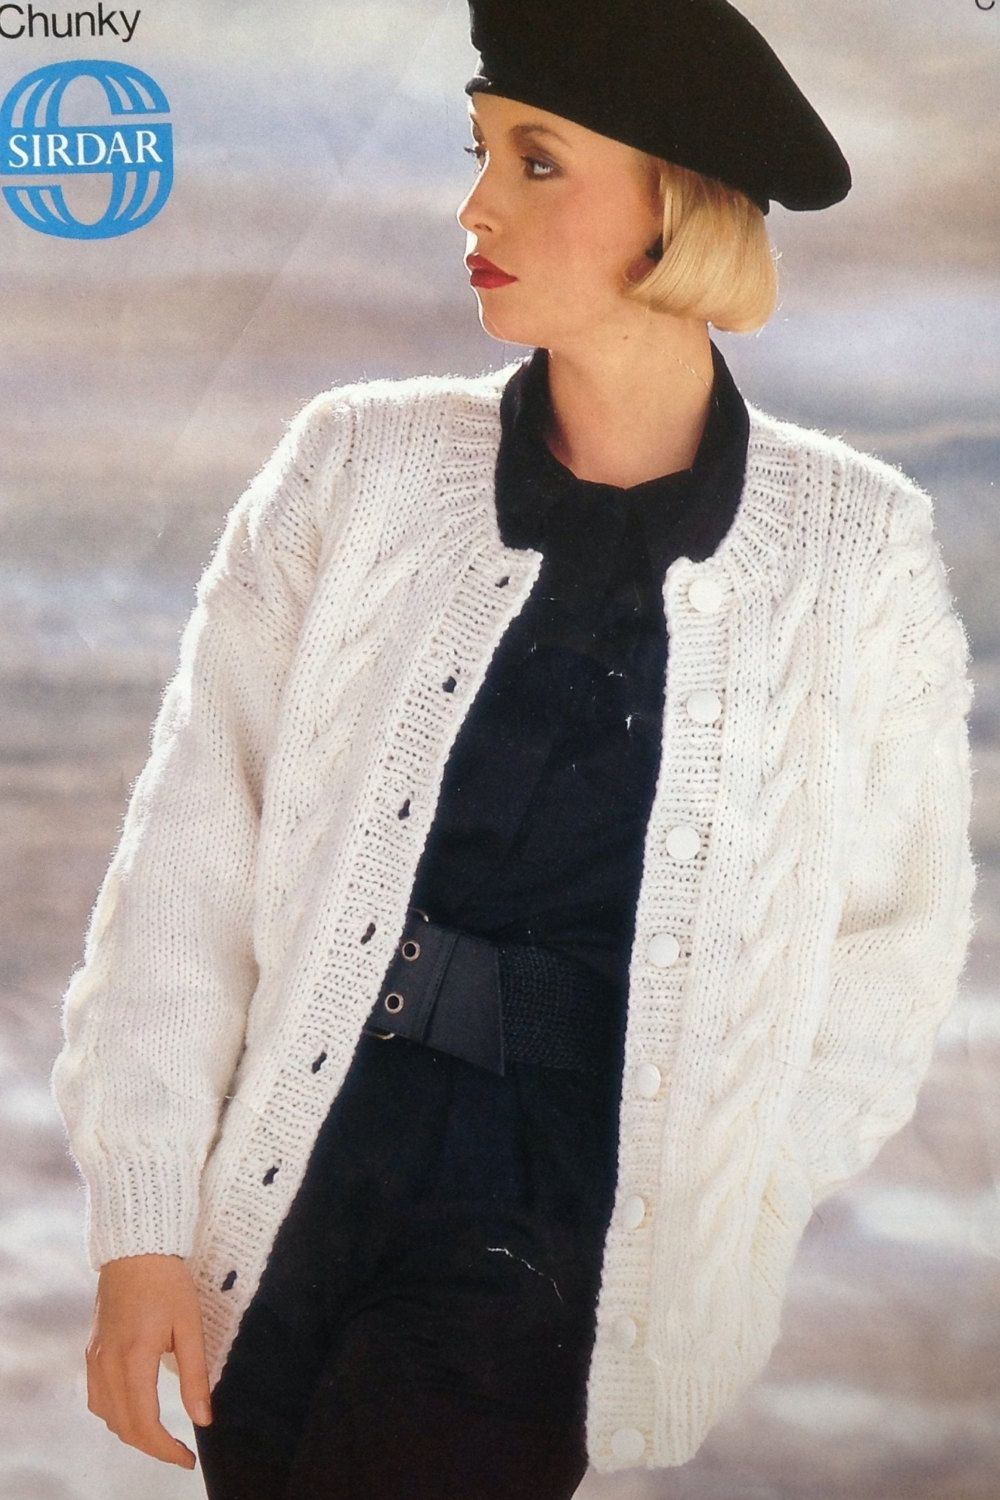 dd125f9cf54678 Ladies  Girls Chunky Cable Knit Cardigan  Jacket Knitting Pattern size  30-40in 46-102cm by makenshare on Etsy